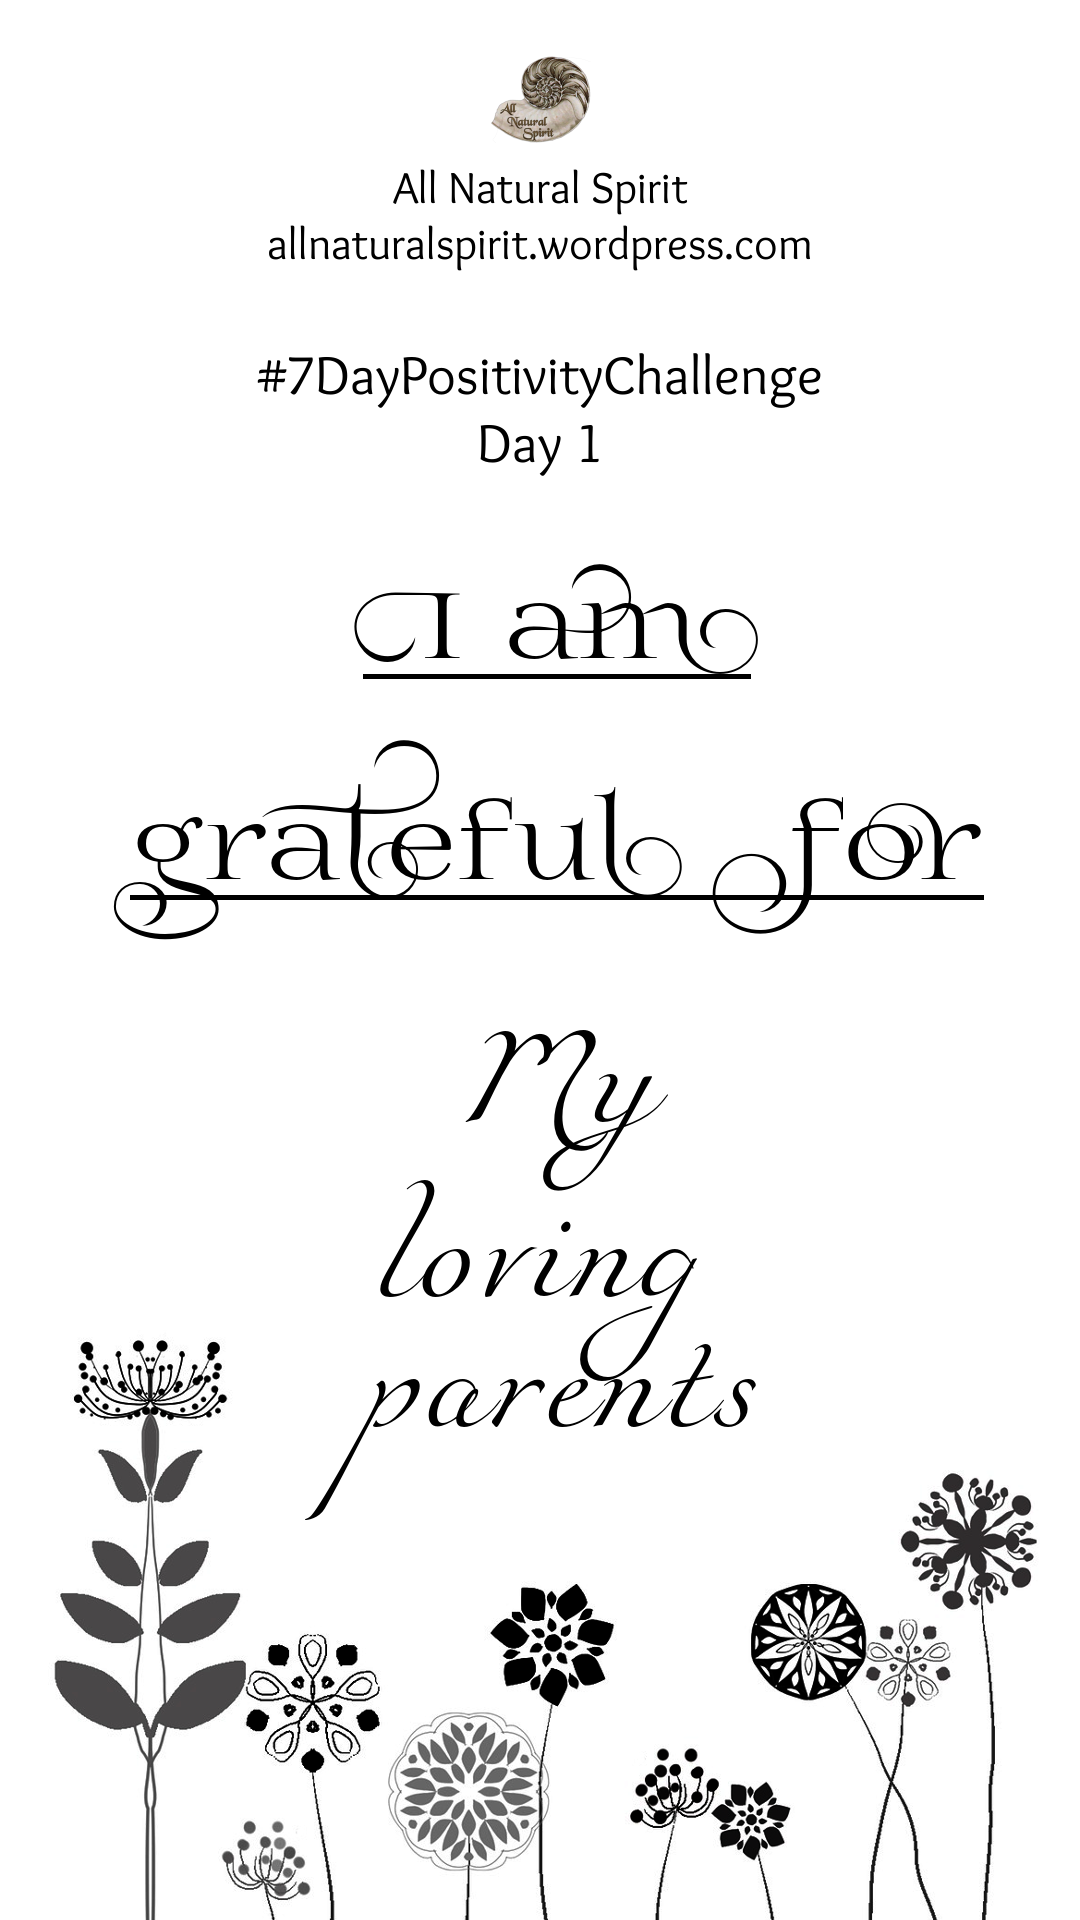 All Natural Spirit, 7 Day Positivity Challenge, Grateful, Gratefulness, Day 1, allnaturalspirit.wordpress.com, mindfulness, typography, flowers, parents